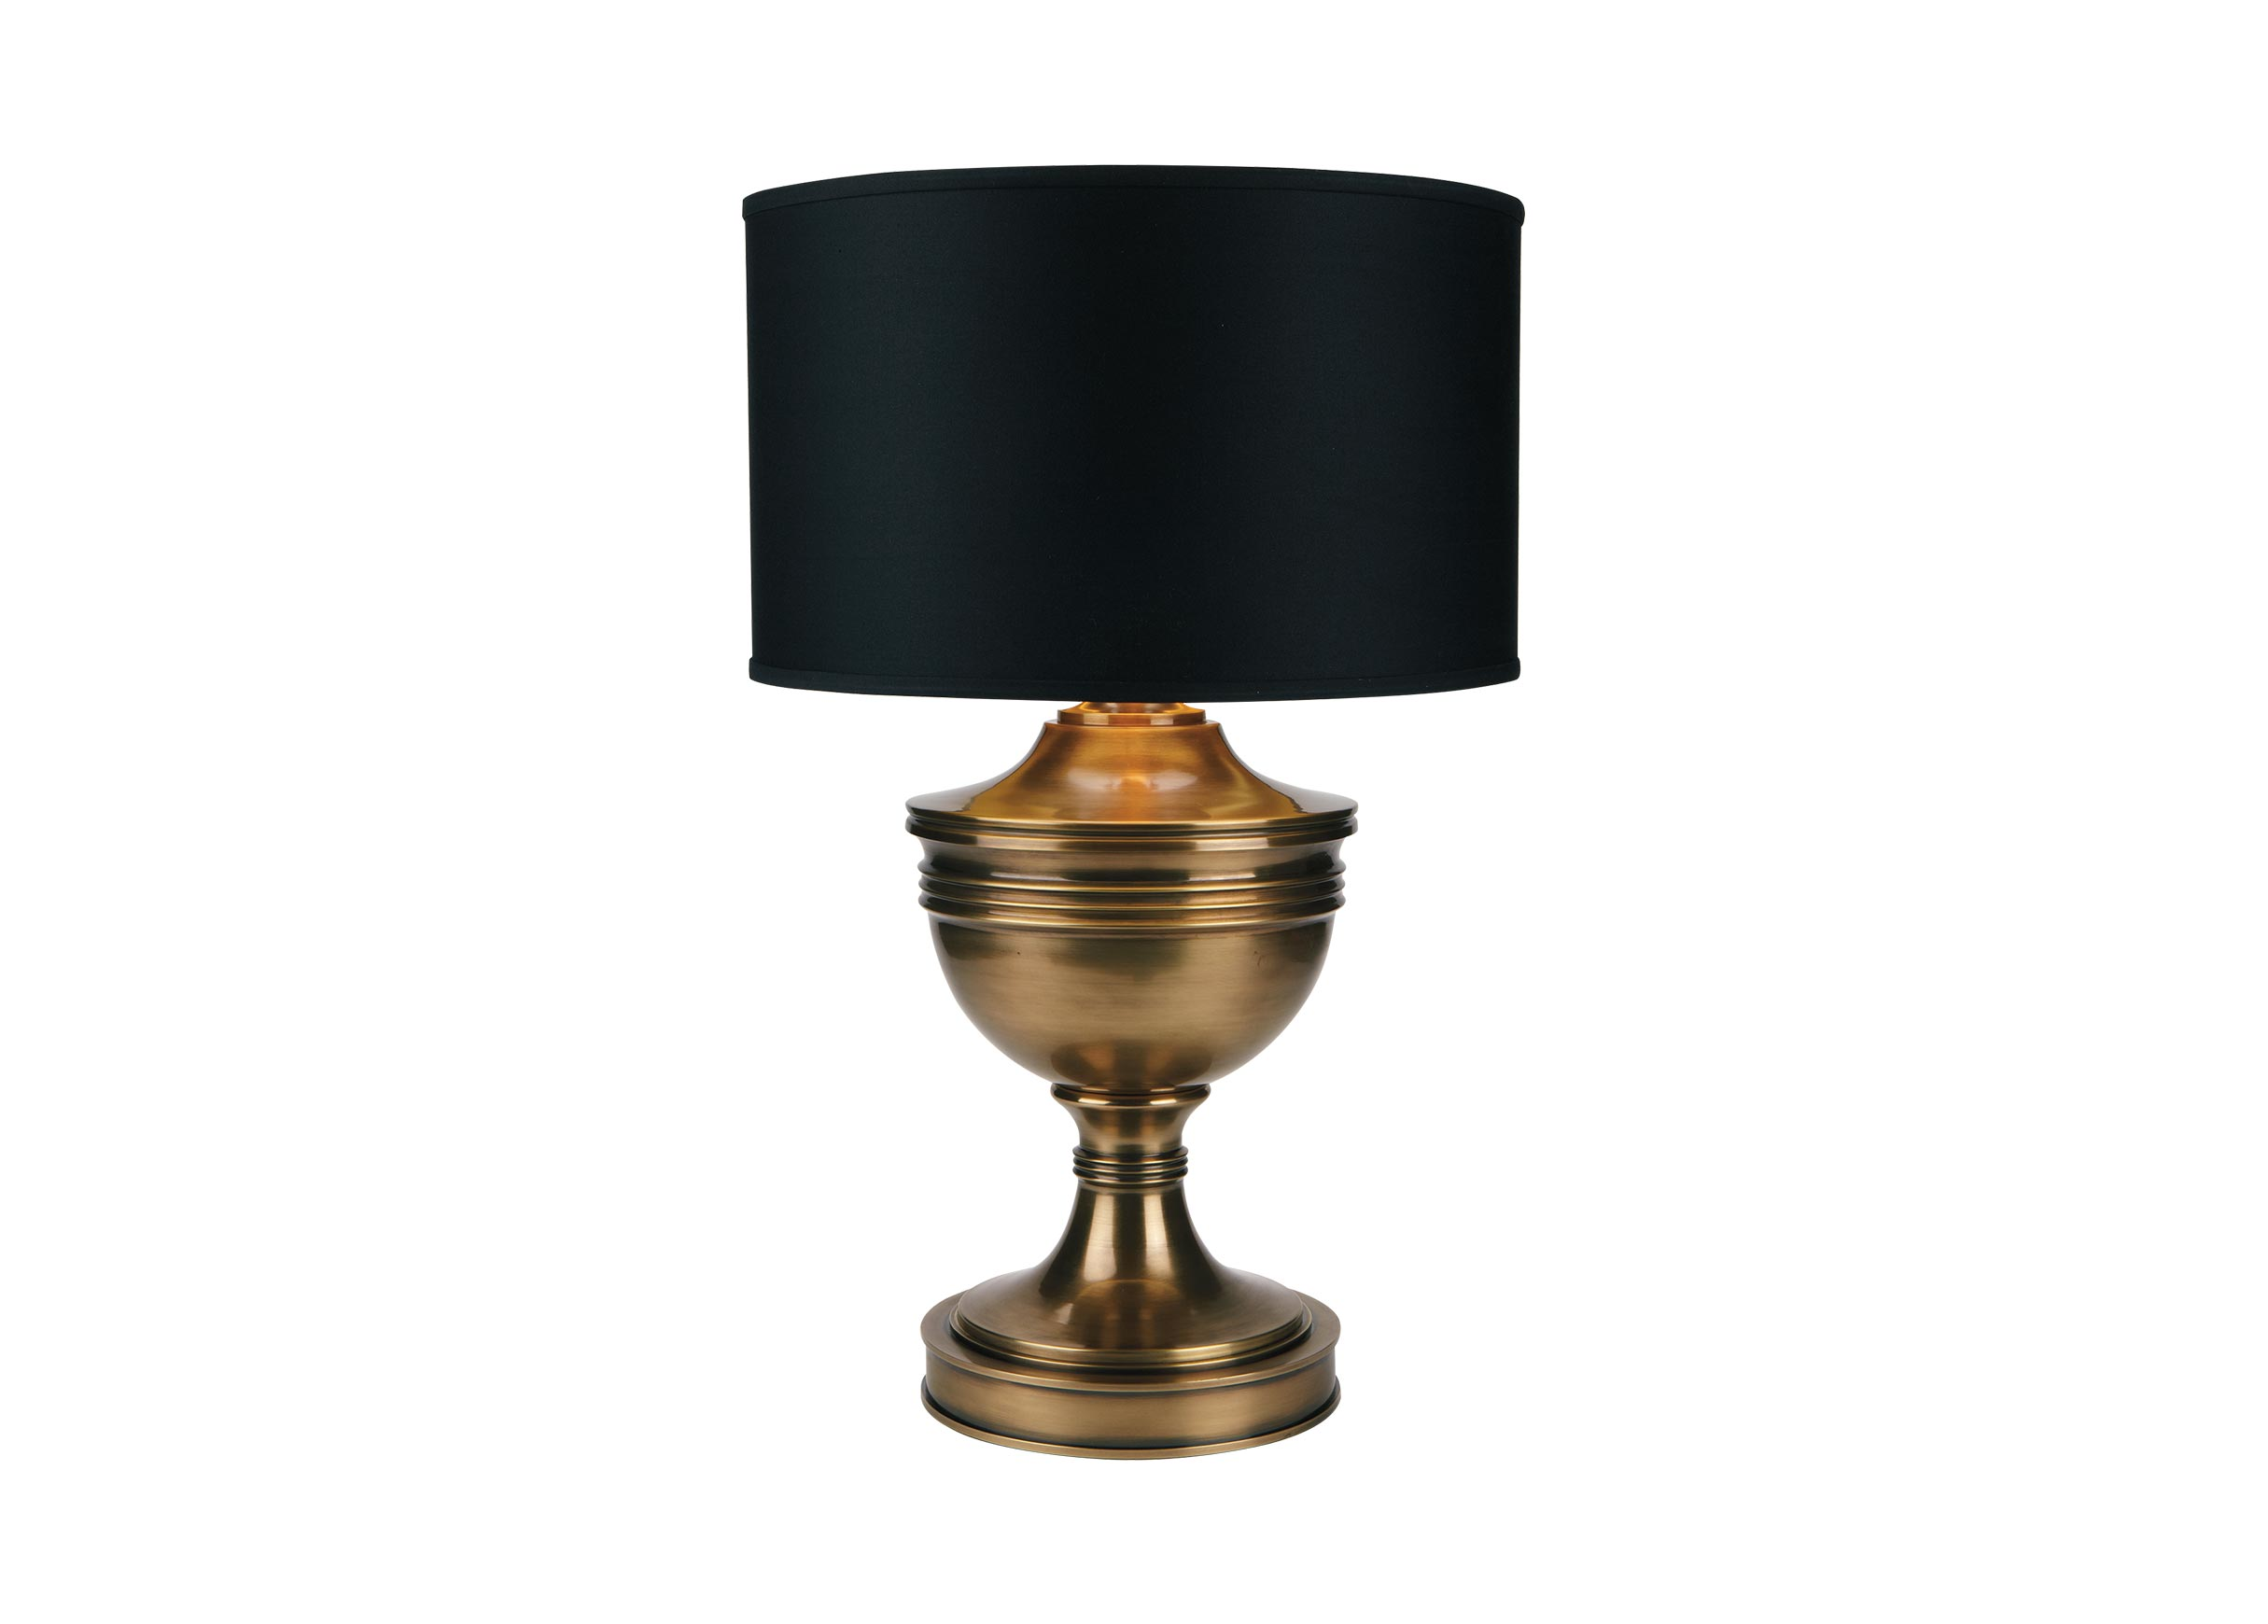 Otis large brass table lamp table lamps images otis large brass table lamp largegray aloadofball Gallery